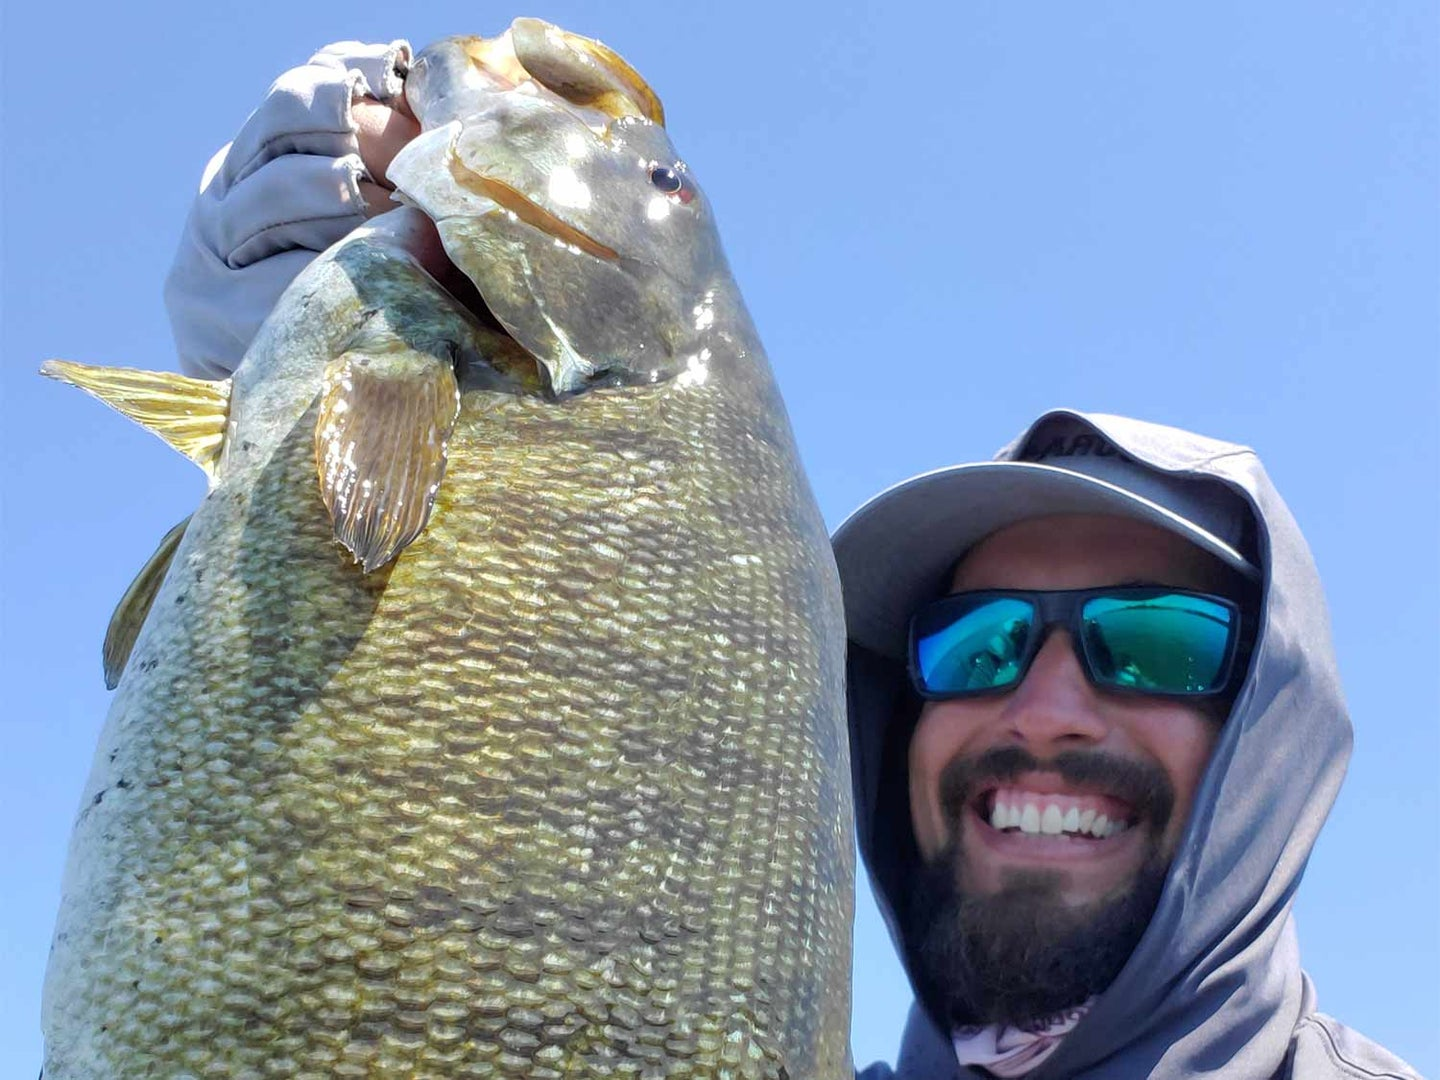 A angler in a cap and hoodie holds up a large smallmouth bass.